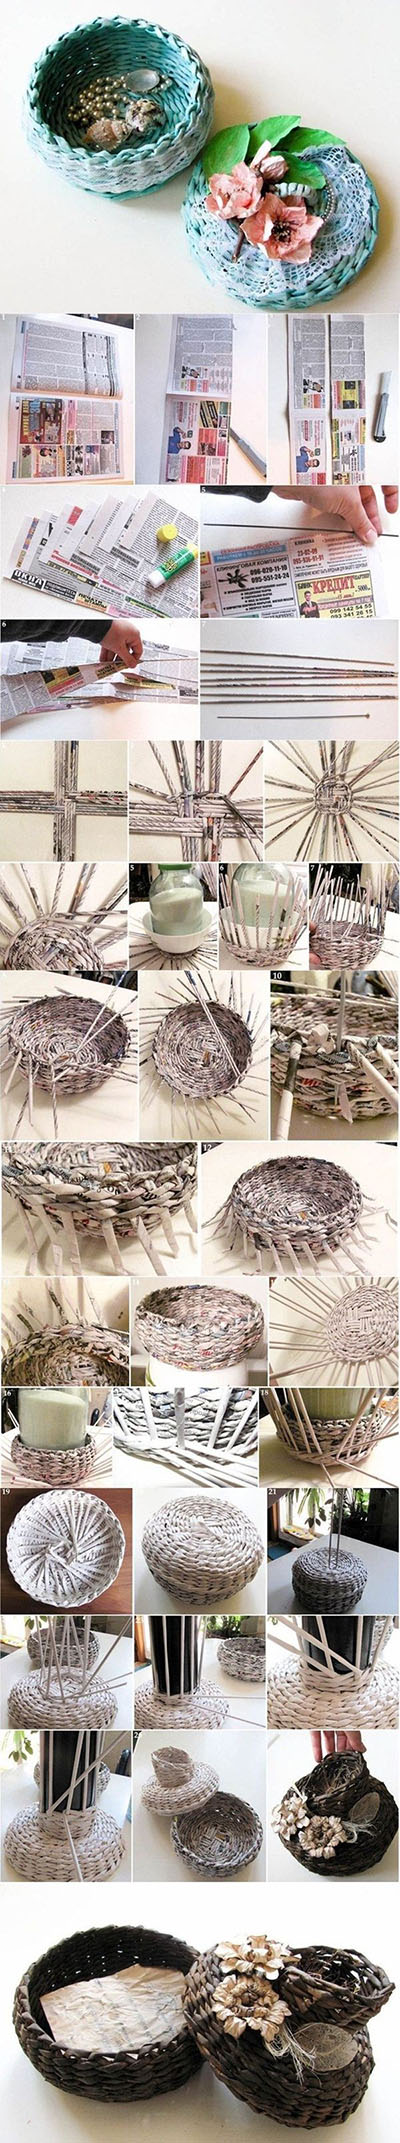 20 weaved basket tutorial3f251f